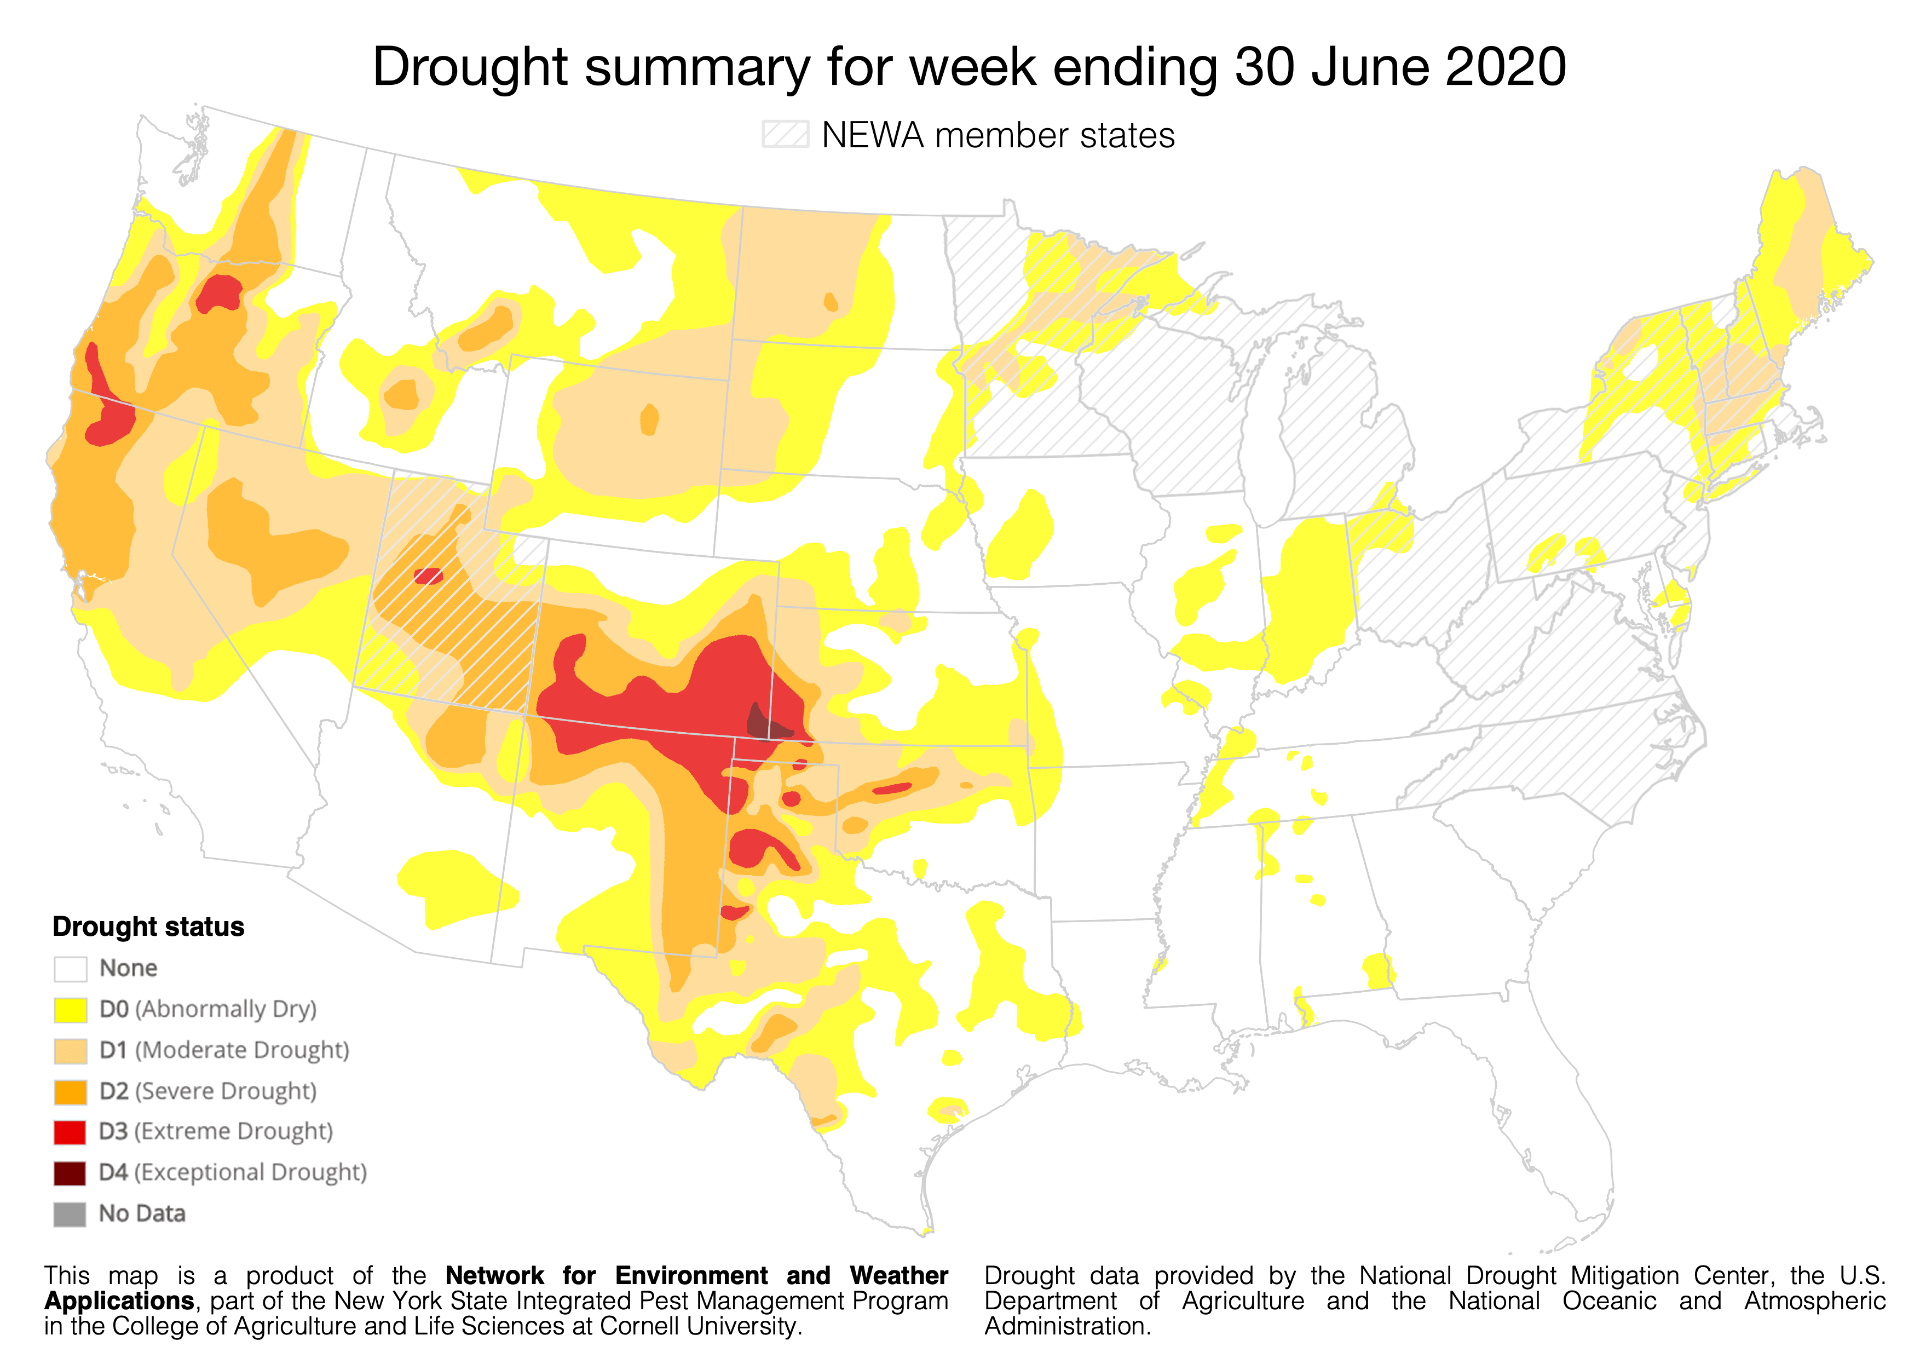 Drought map provided by the National Drought Mitigation Center at University of Nebraska for 30 June 2020.